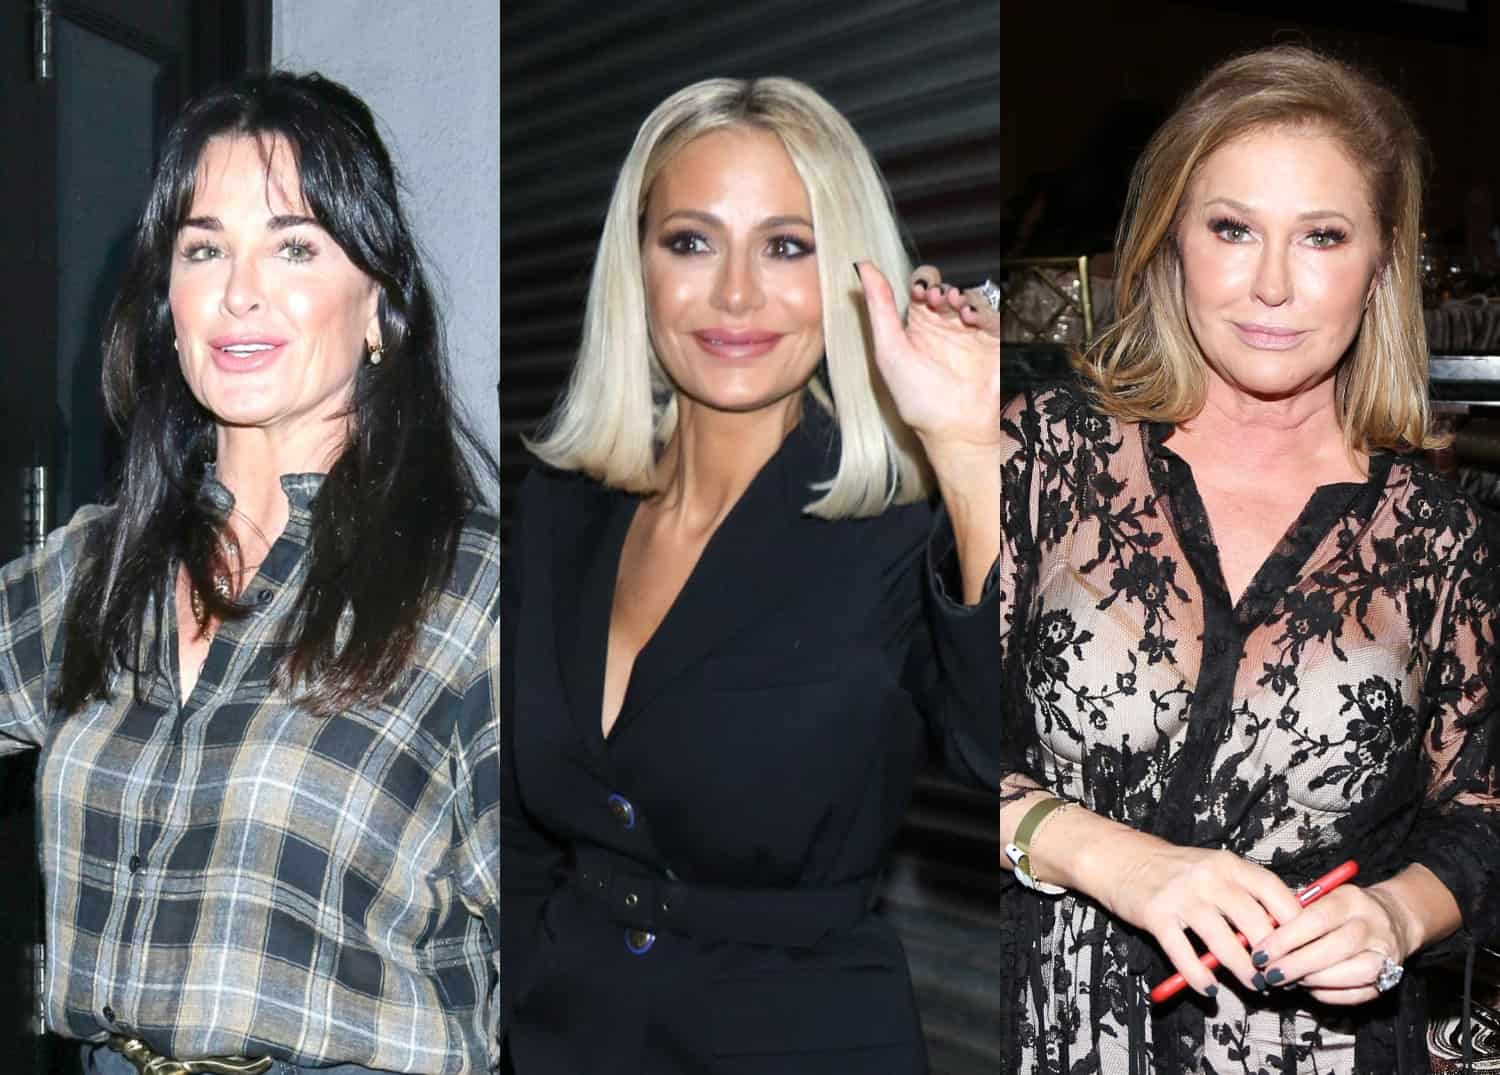 Kyle Richards and Dorit Kemsley Test Positive For Coronavirus Amid RHOBH Production Halt, Kathy Hilton Also Contracts Virus as All Women Recovering From Symptoms